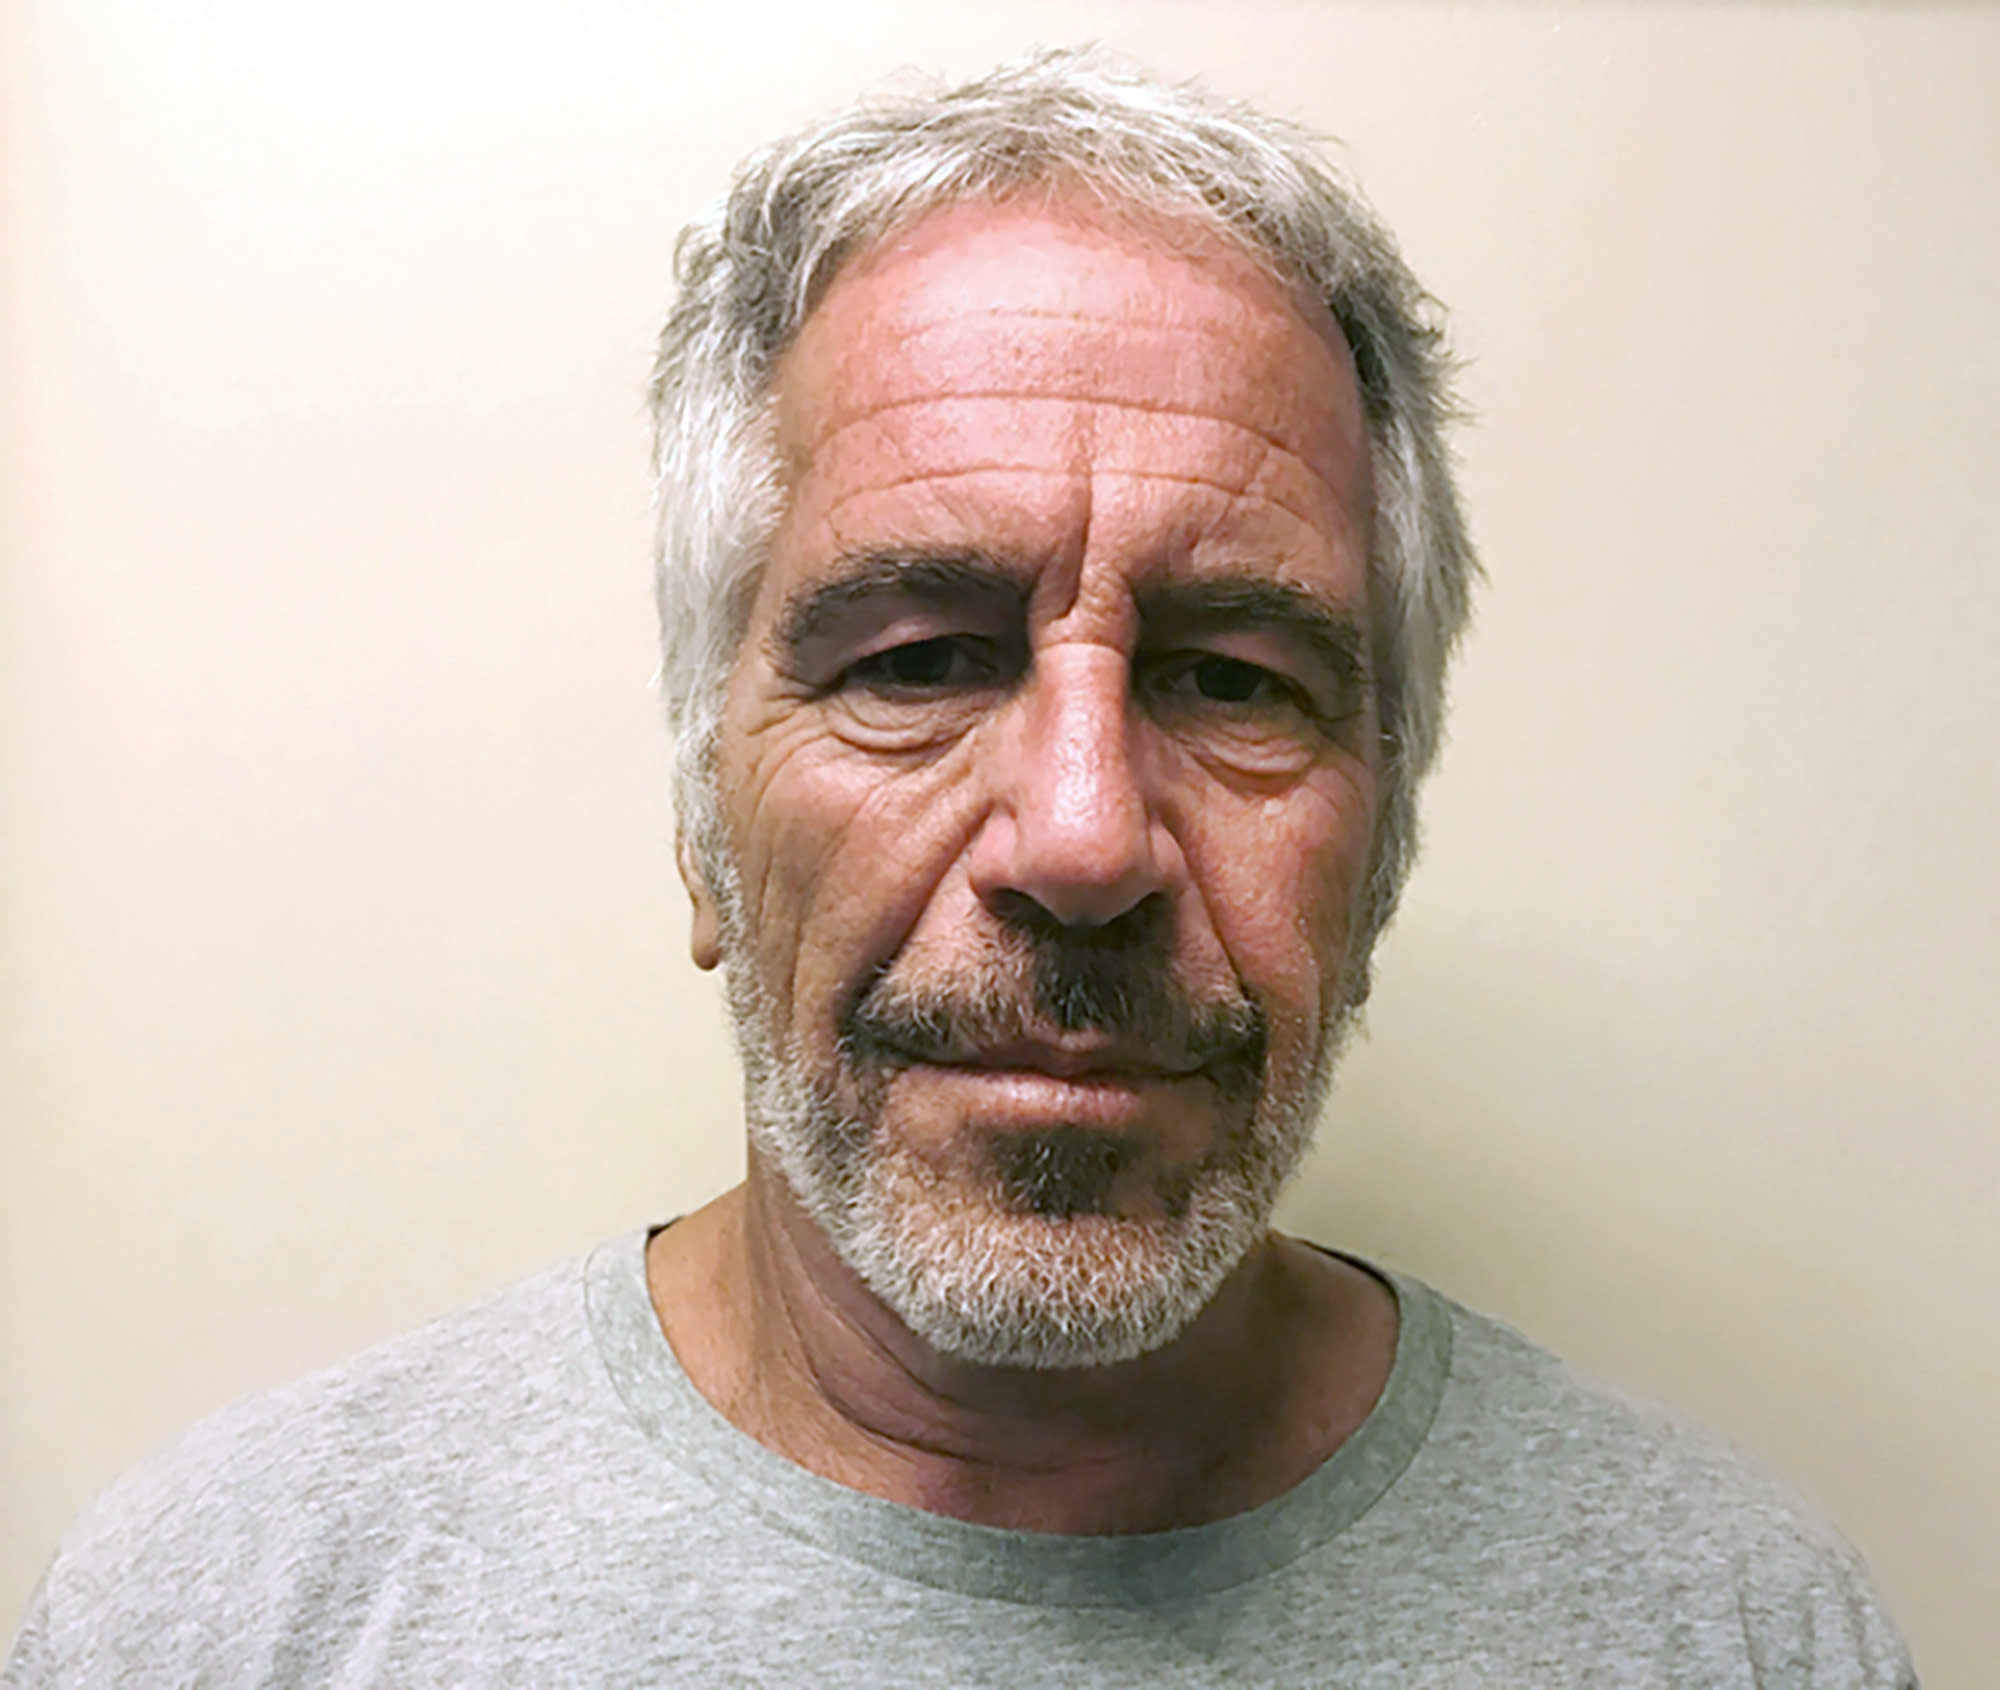 Lawyer says Epstein guards are made scapegoats